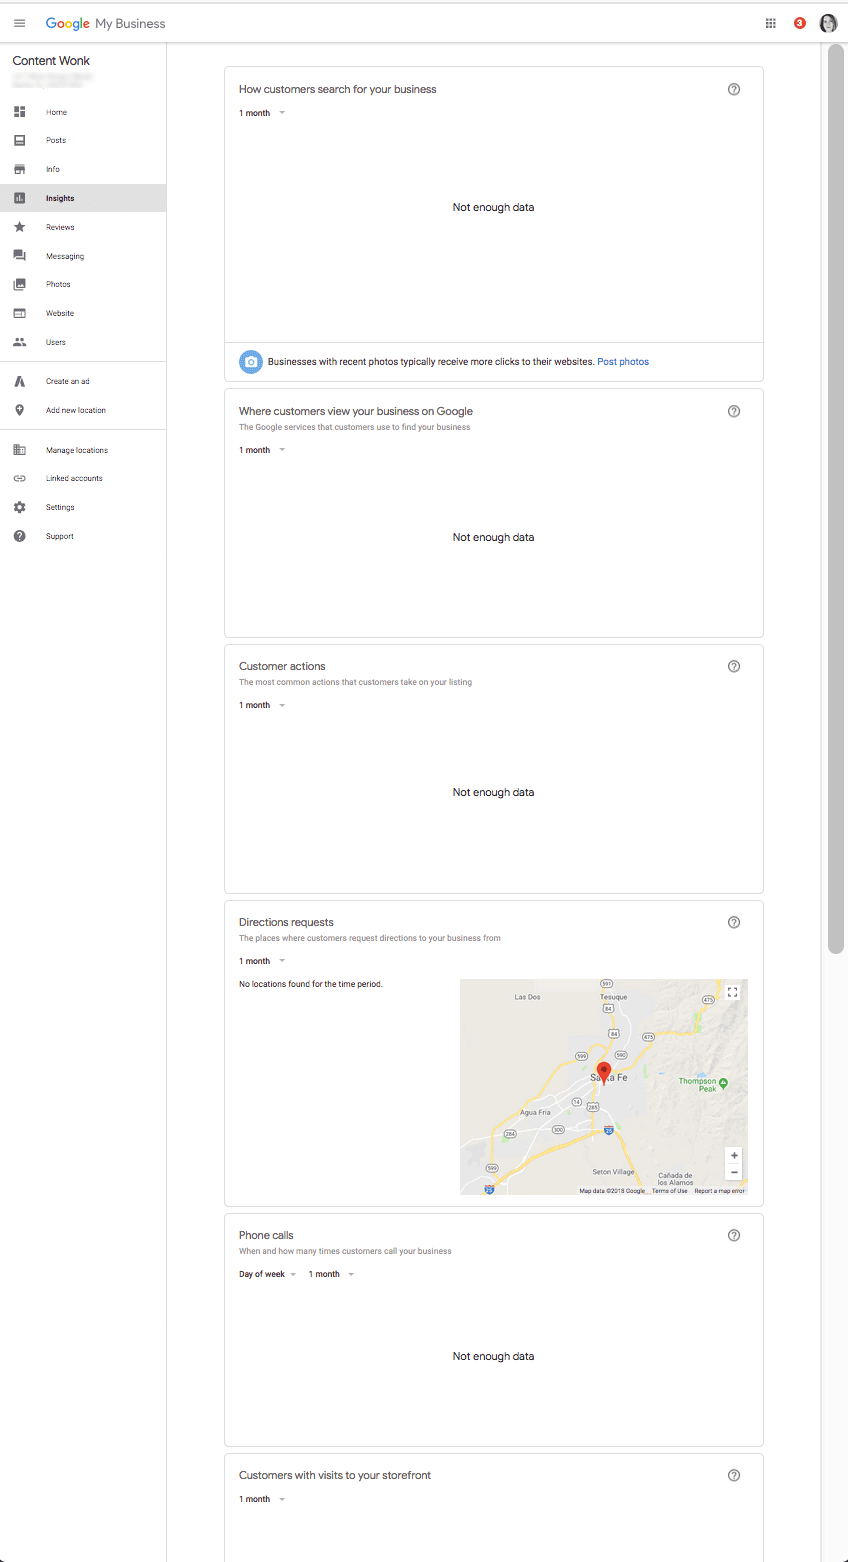 Google My Business Insights report